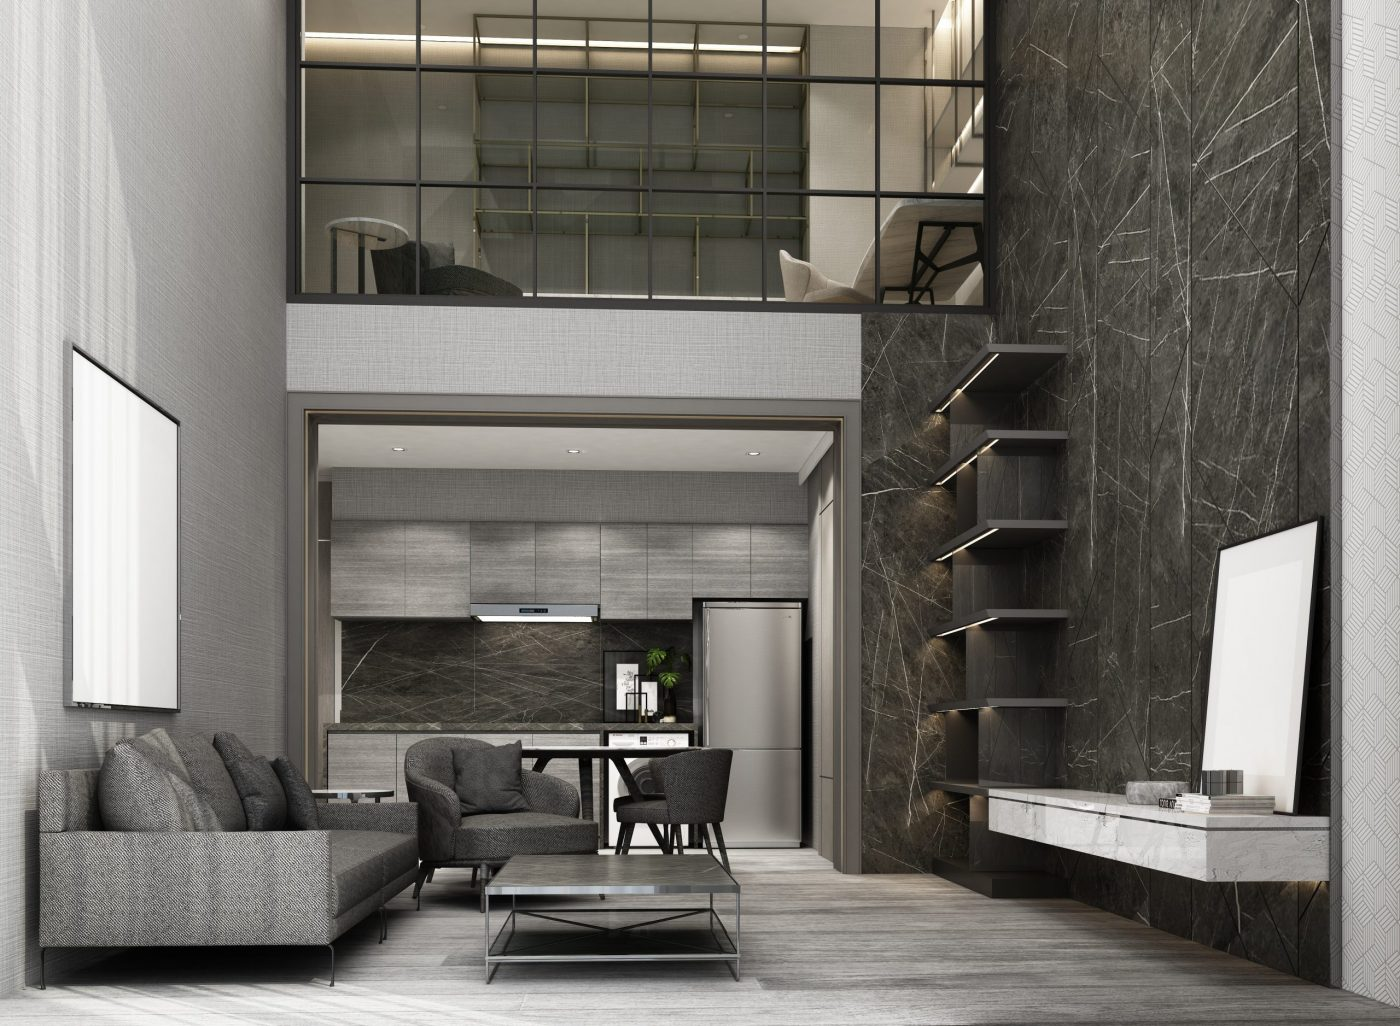 Tips and Tricks On Decorating Interiors with High Ceilings